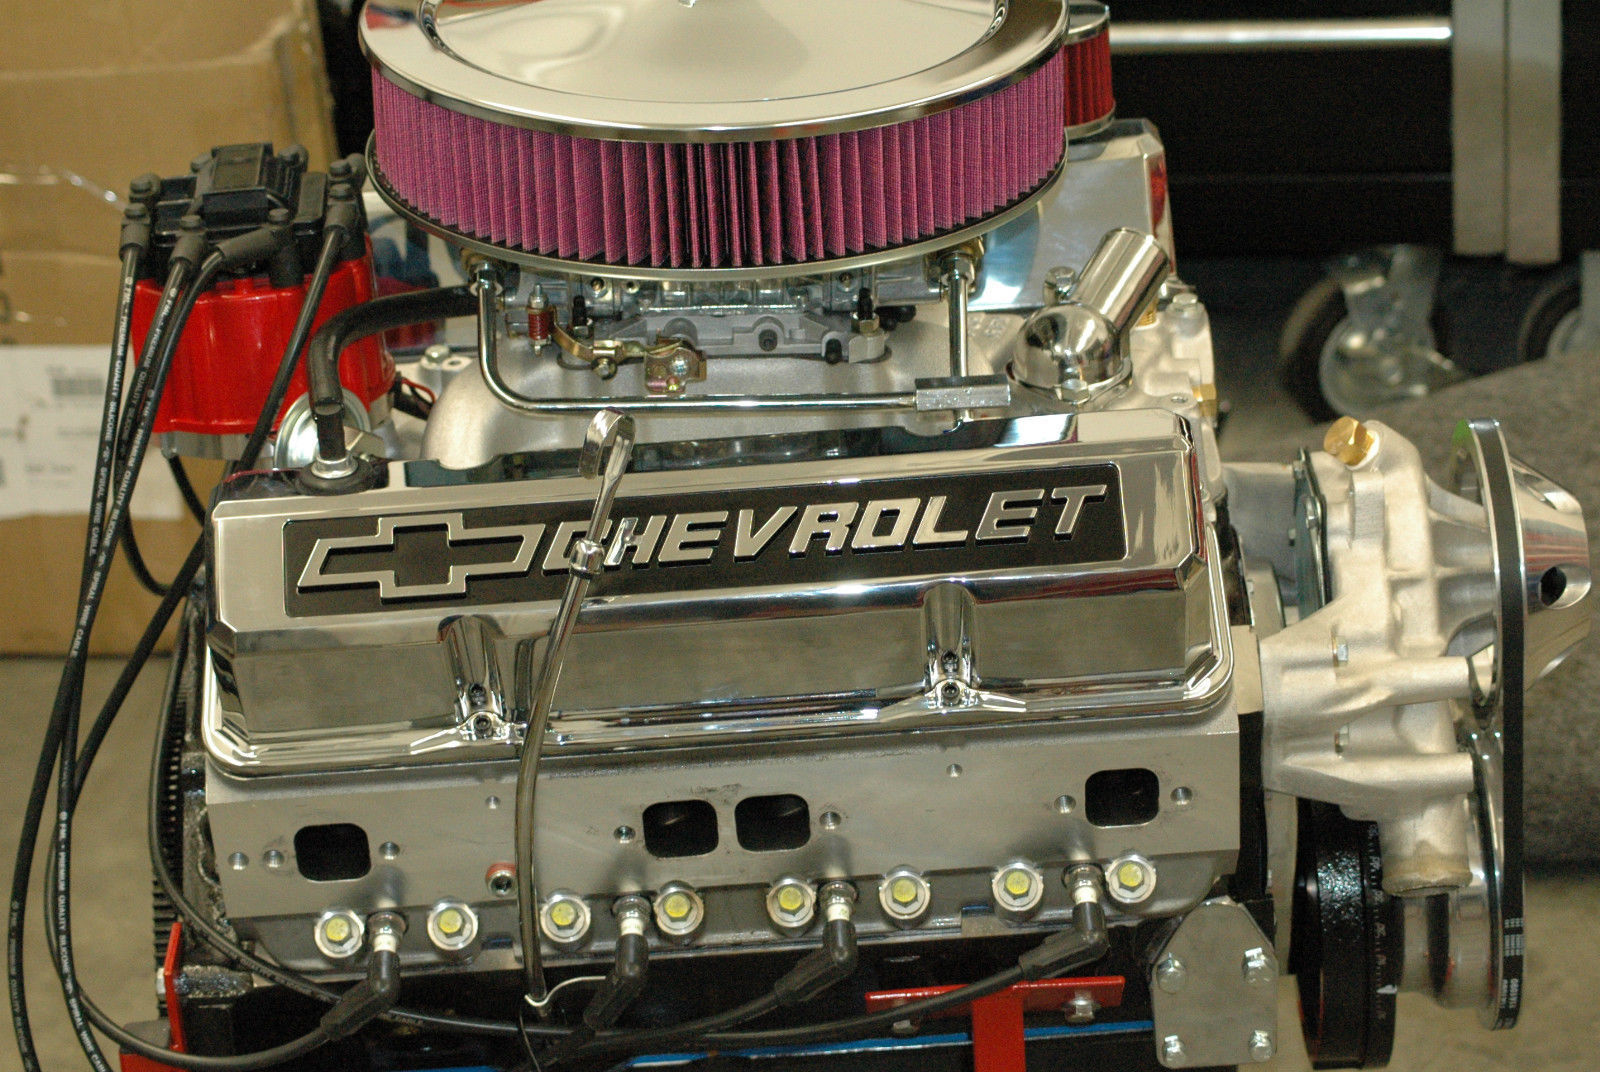 Ema engines chevrolet turnkey 383 stroker engine alloy heads 420hp ema engines chevrolet turnkey 383 stroker engine alloy heads 420hp 450 ftlbs 5700rpm malvernweather Image collections